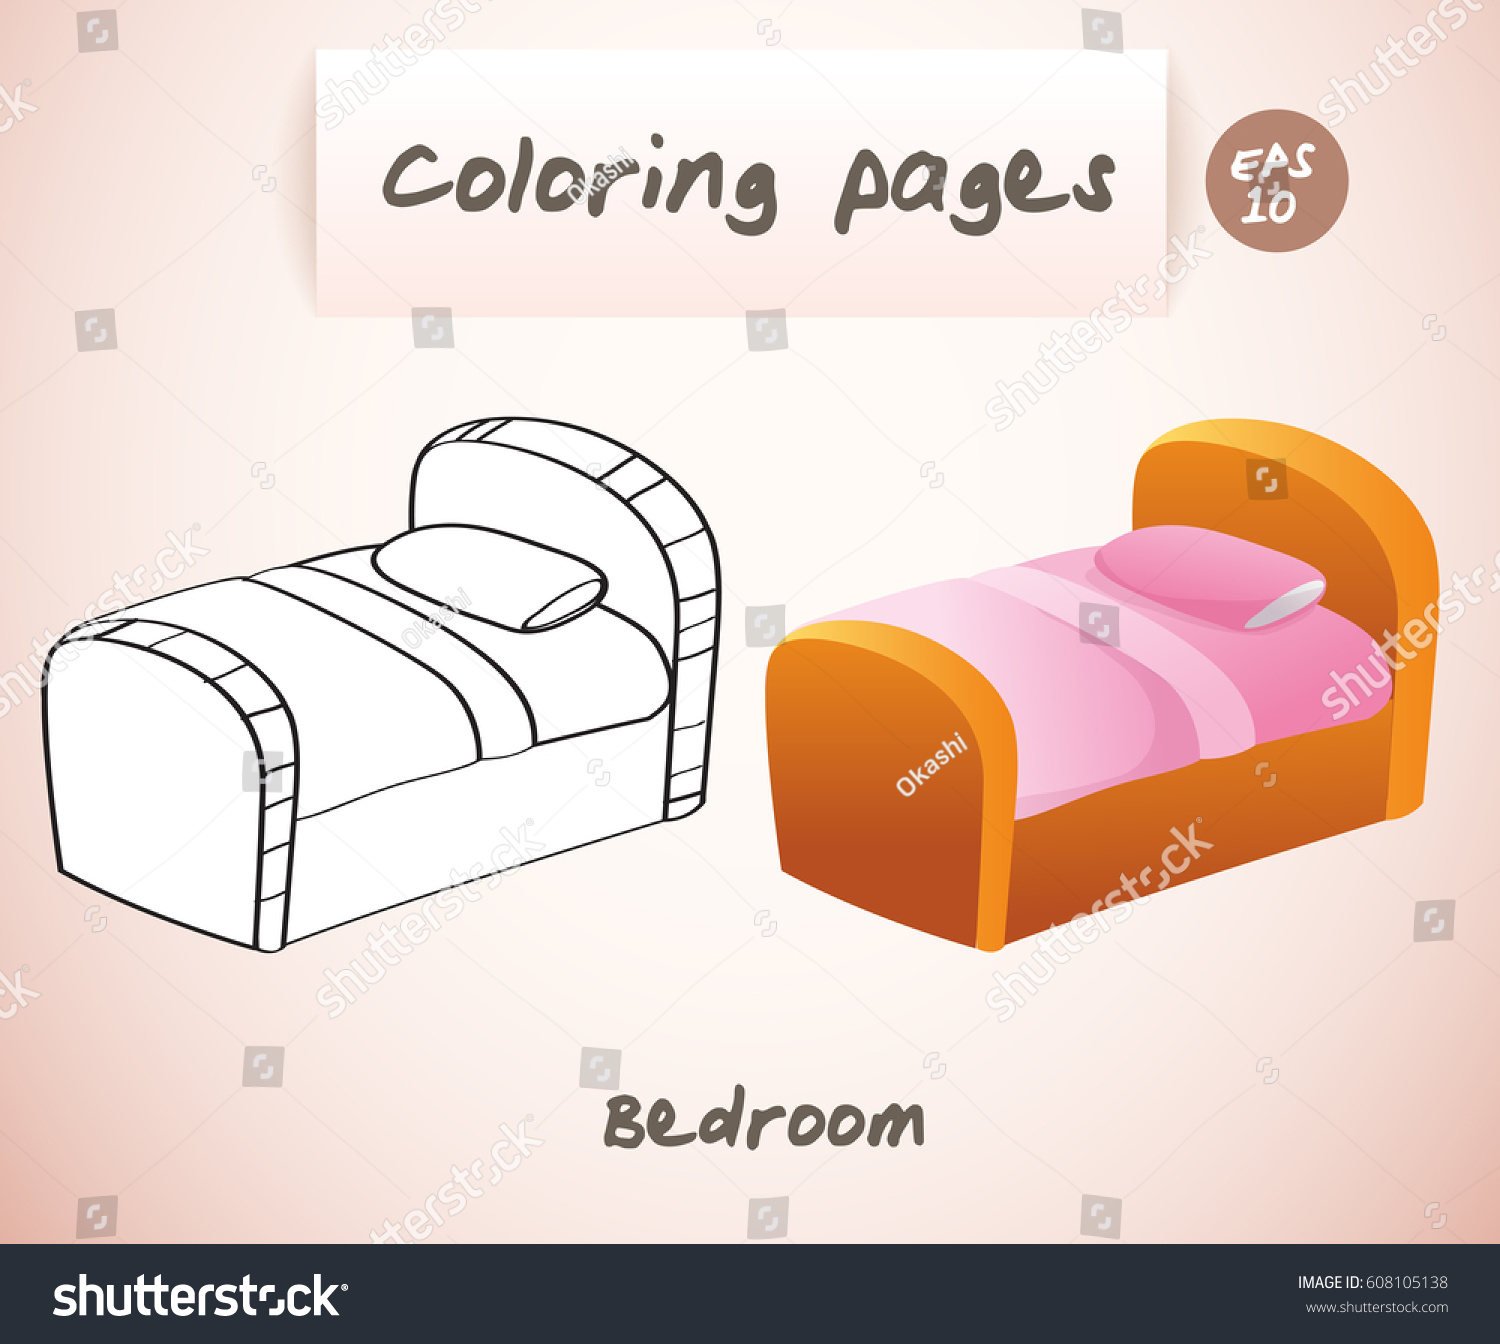 Coloring Book Pages Kids Bedroom Bed Stock Vector Royalty Free 608105138